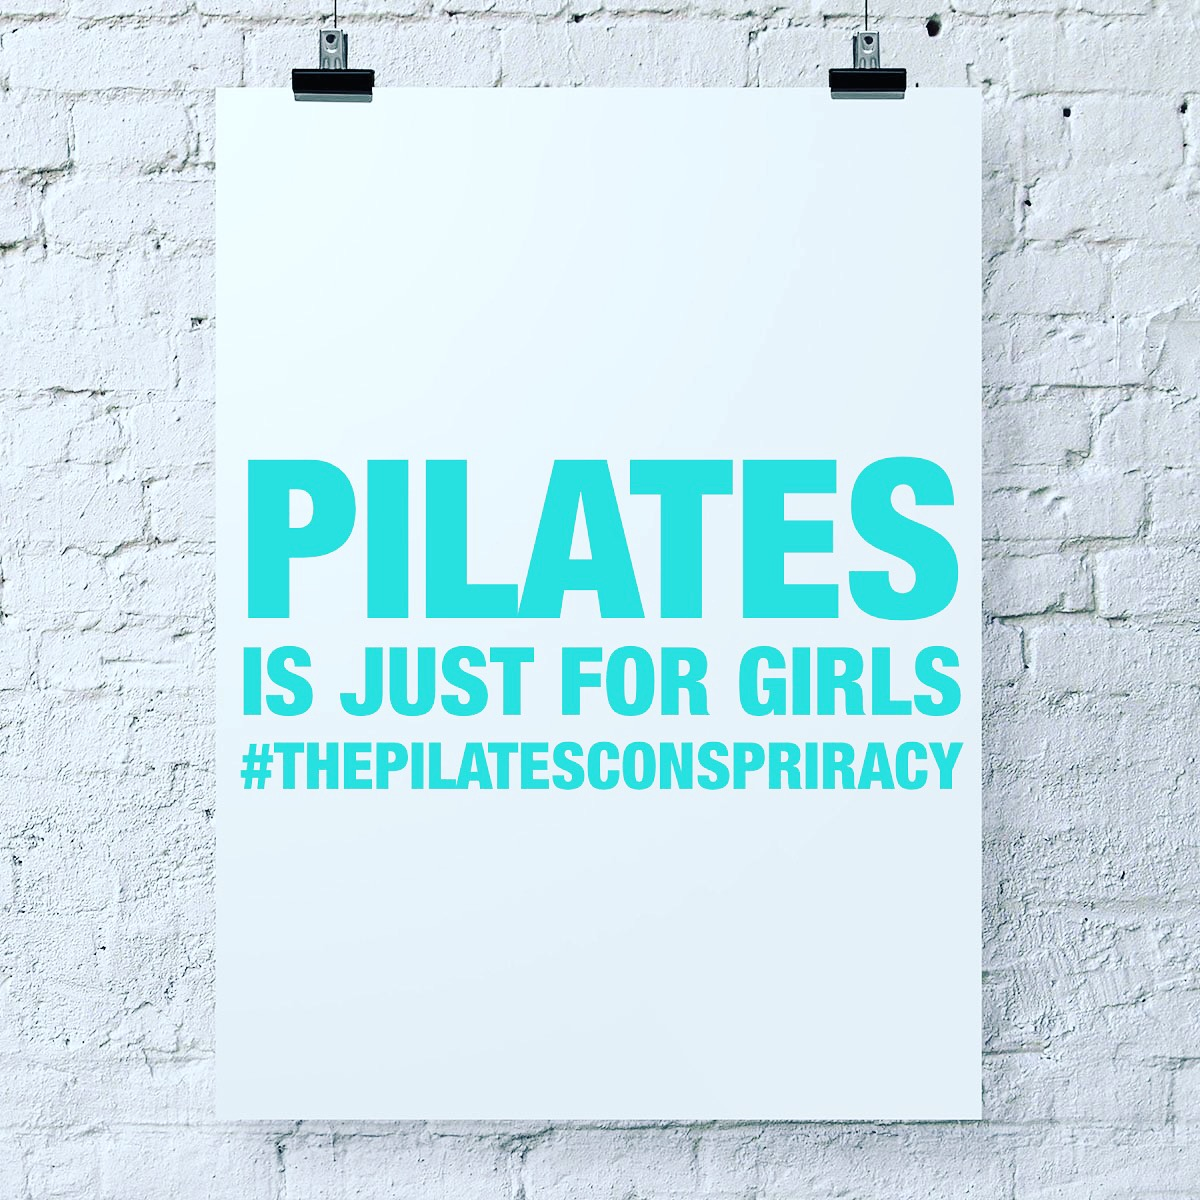 Pilates is just for girls